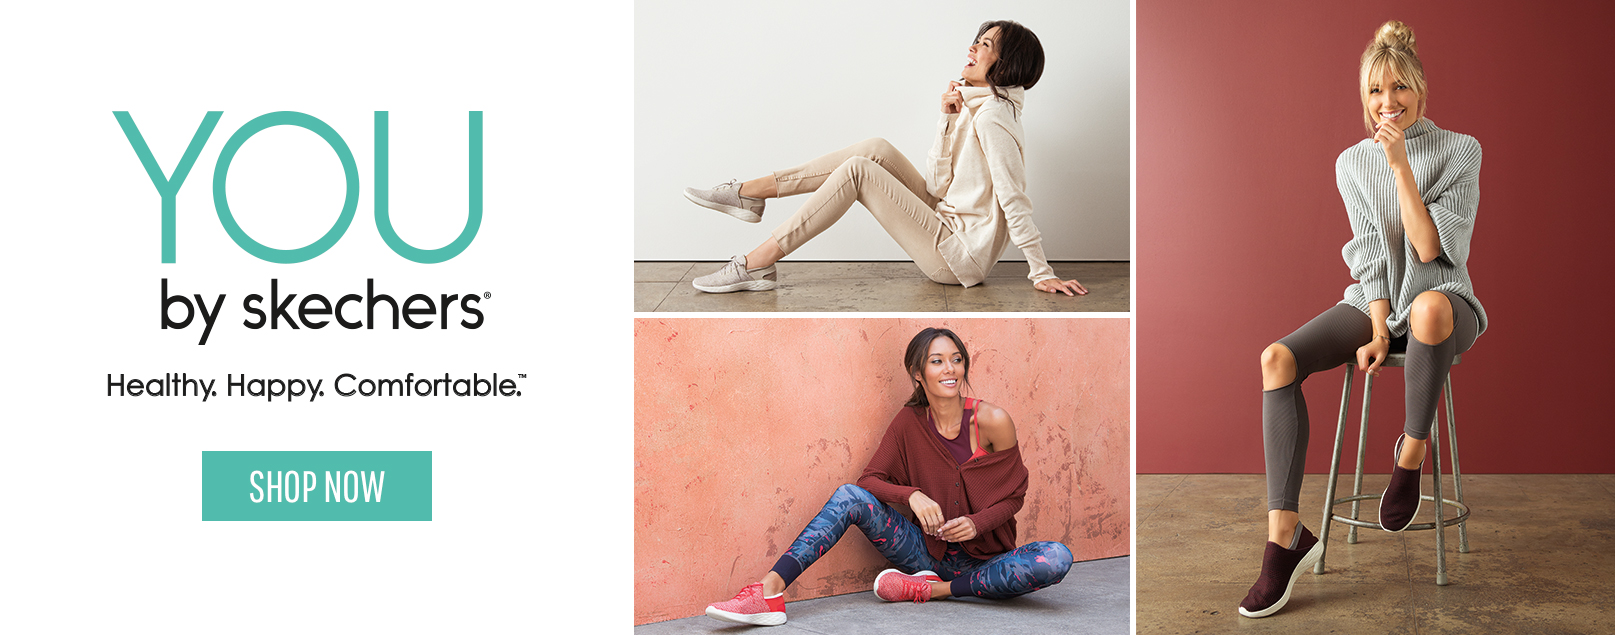 A footwear collection combining lifestyle and wellness. YOU by SKECHERS